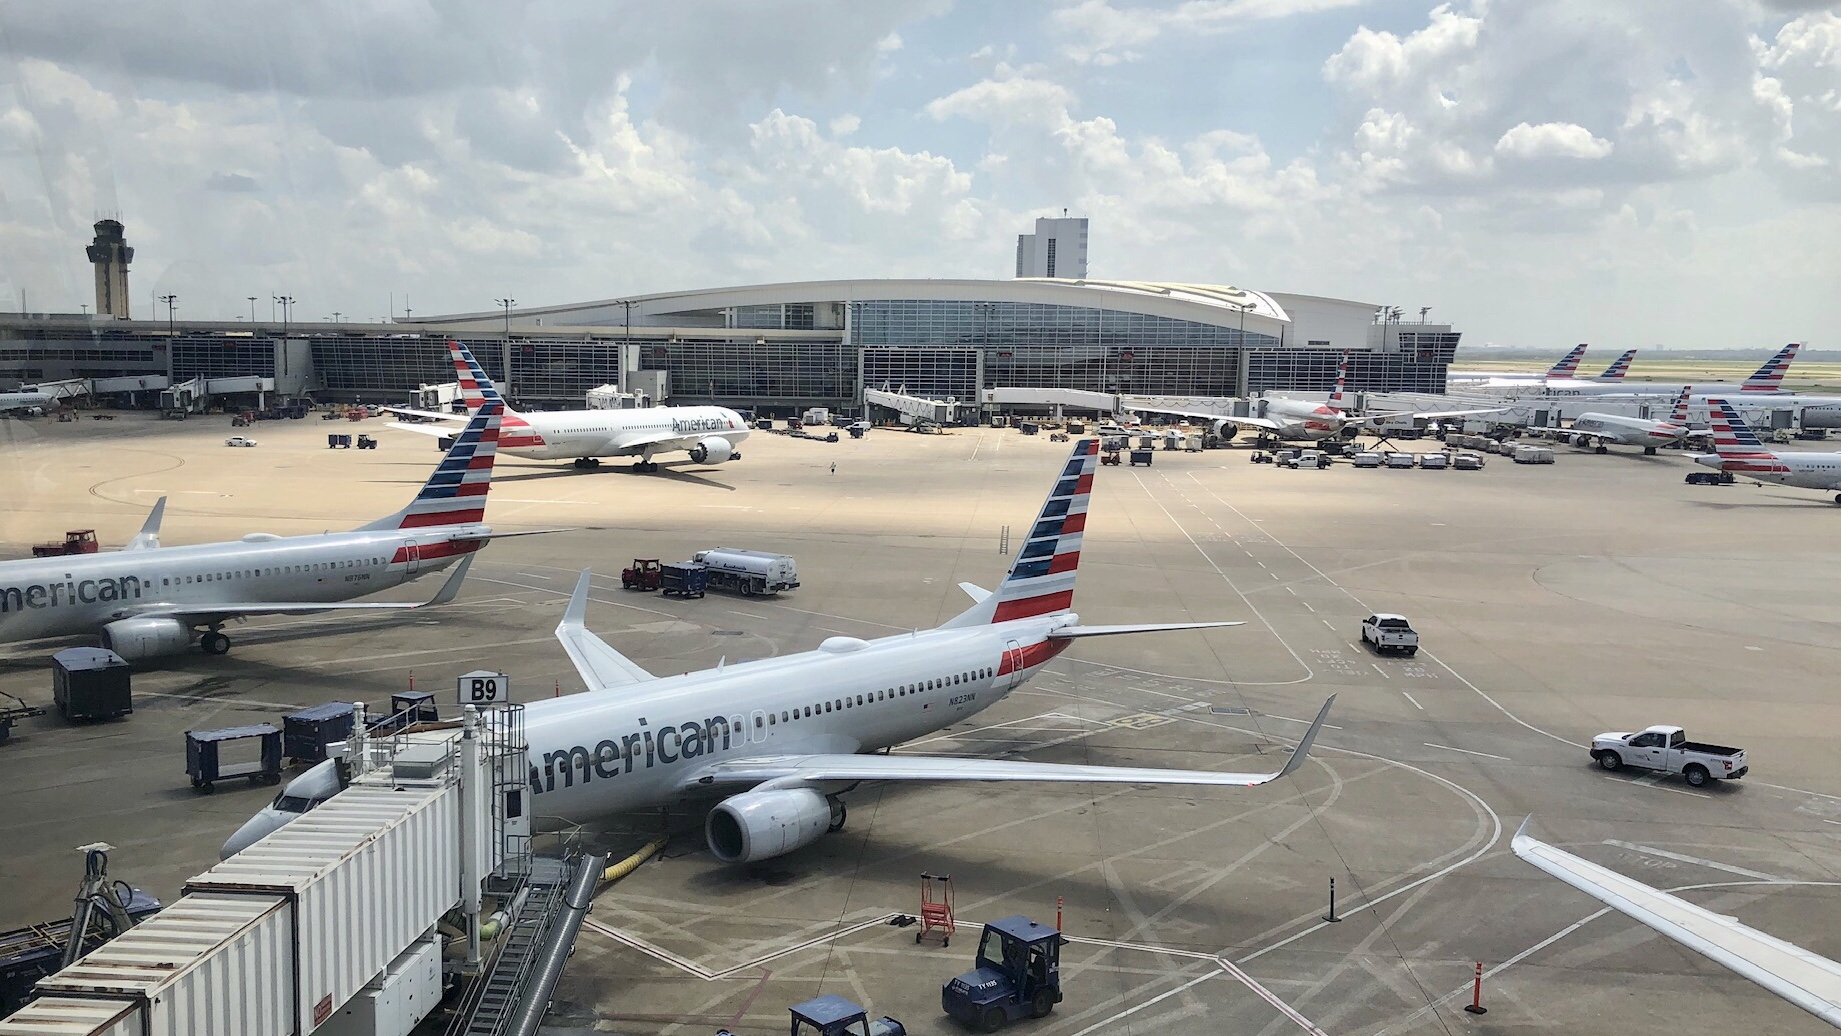 Flagstaff, here we come! Photo from DFW airport of American Airlines planes on the runway.